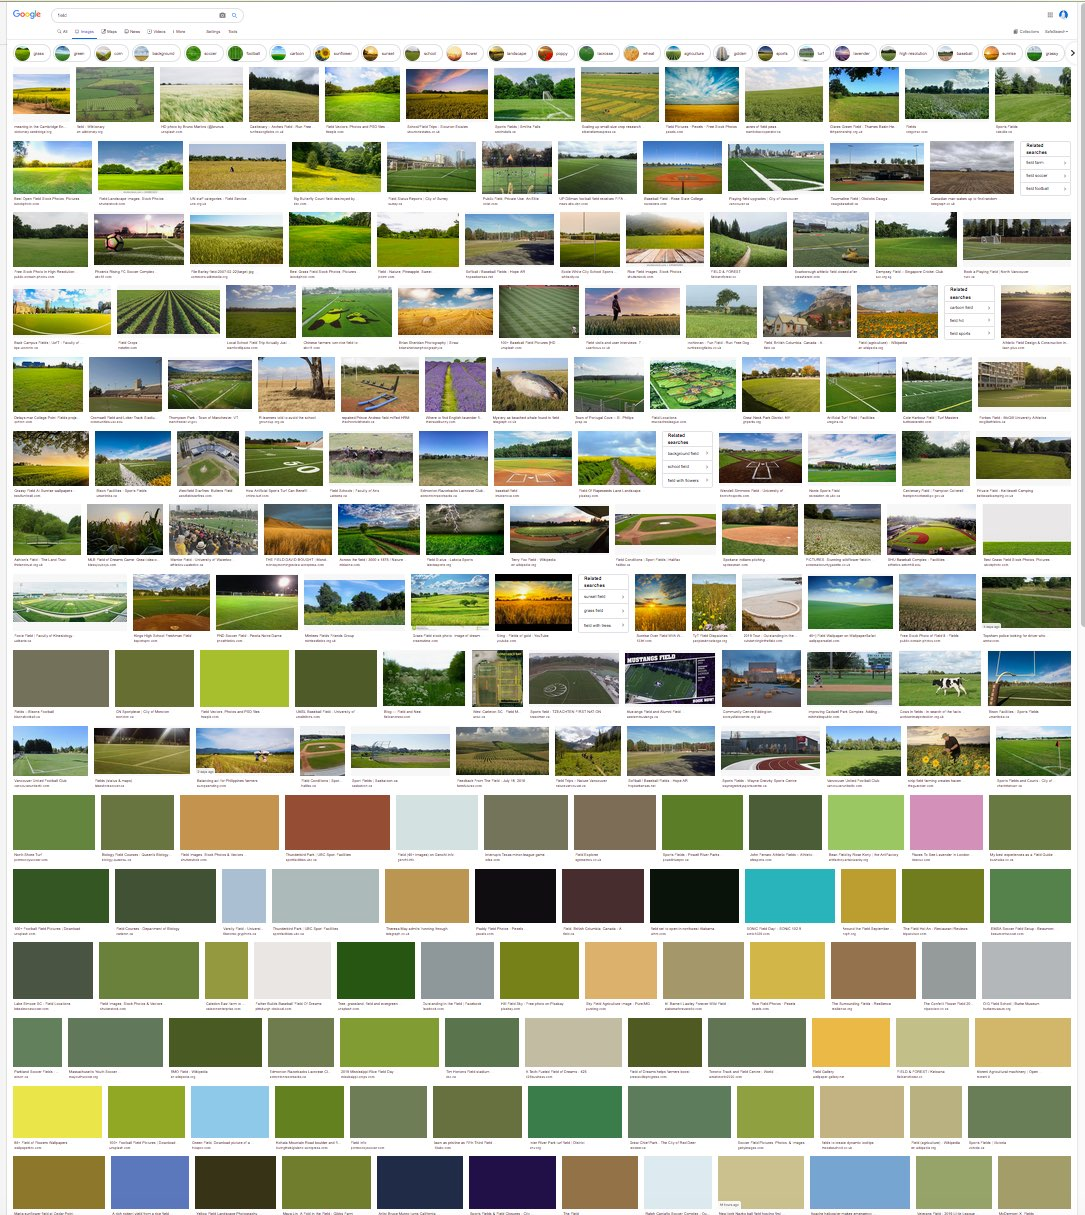 field - Google Search.jpg